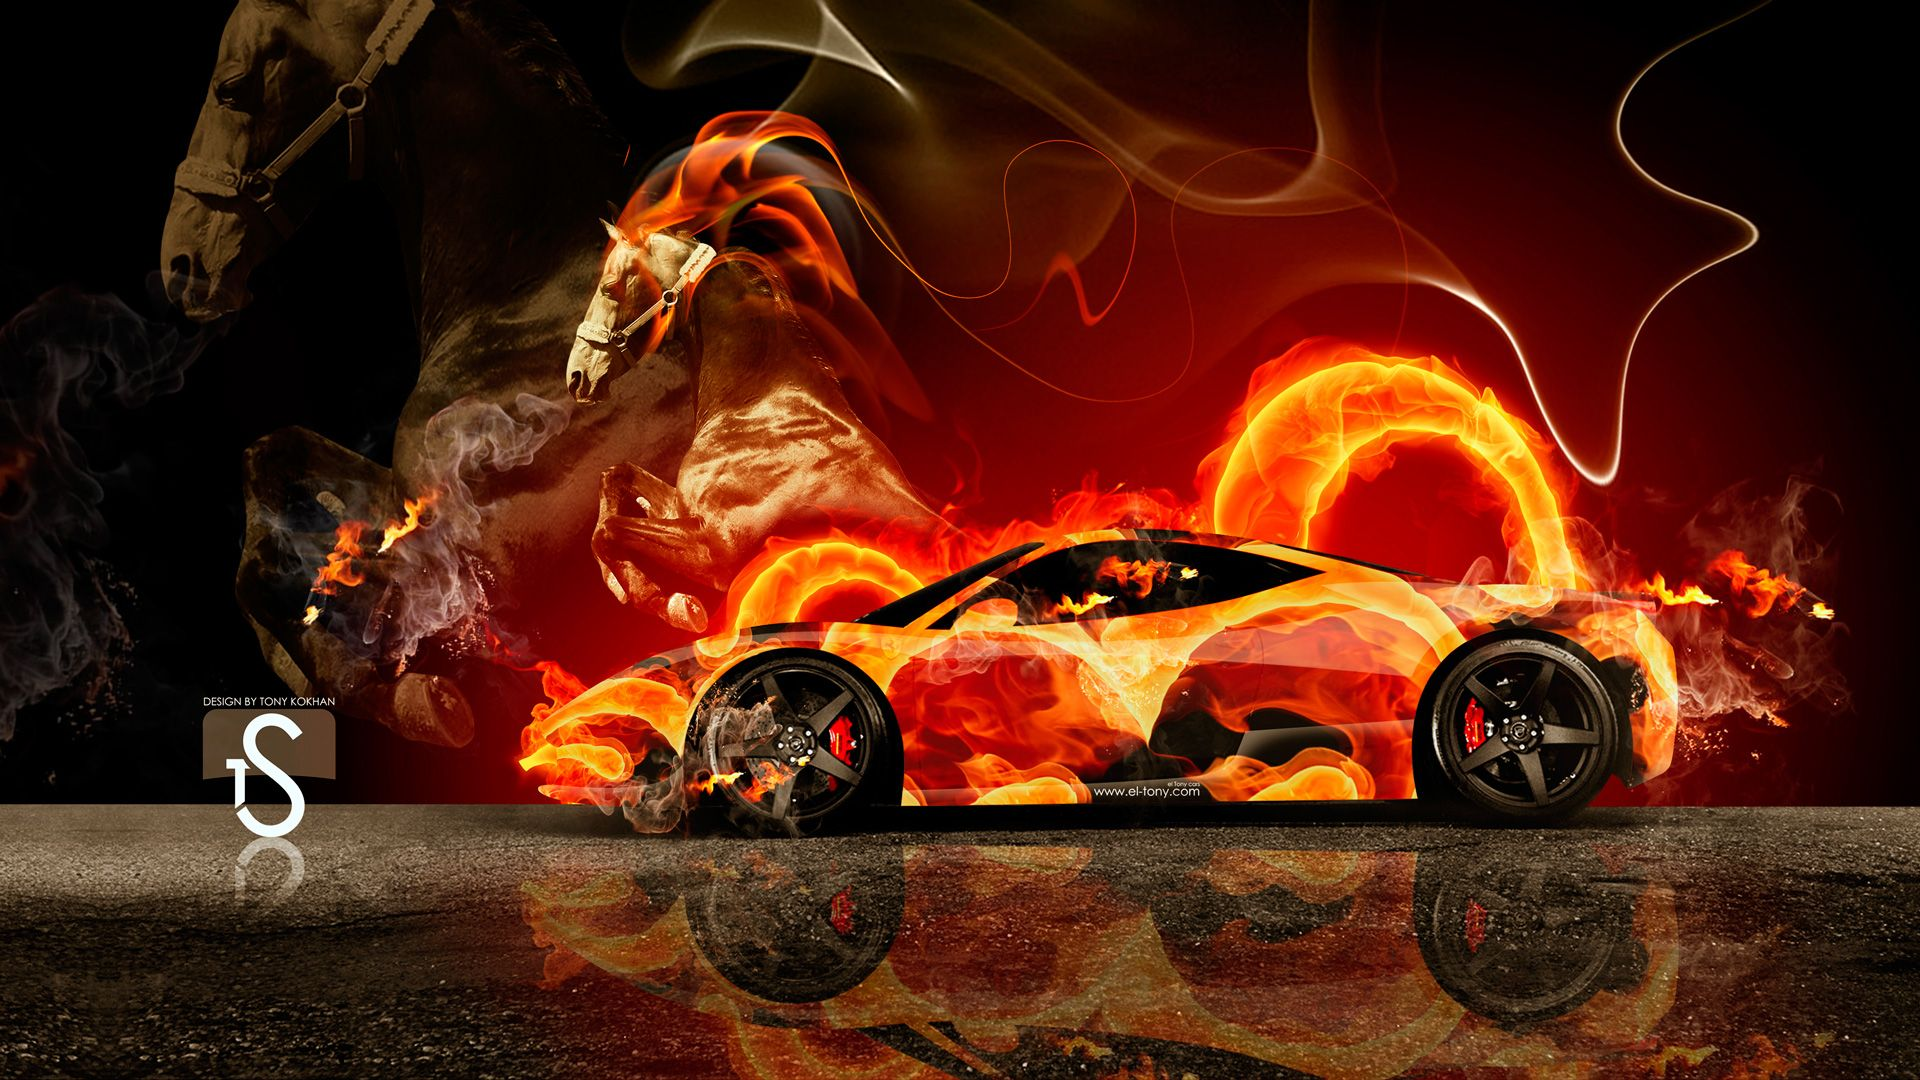 Ferrari Fire Horse Car 2014 | El Tony